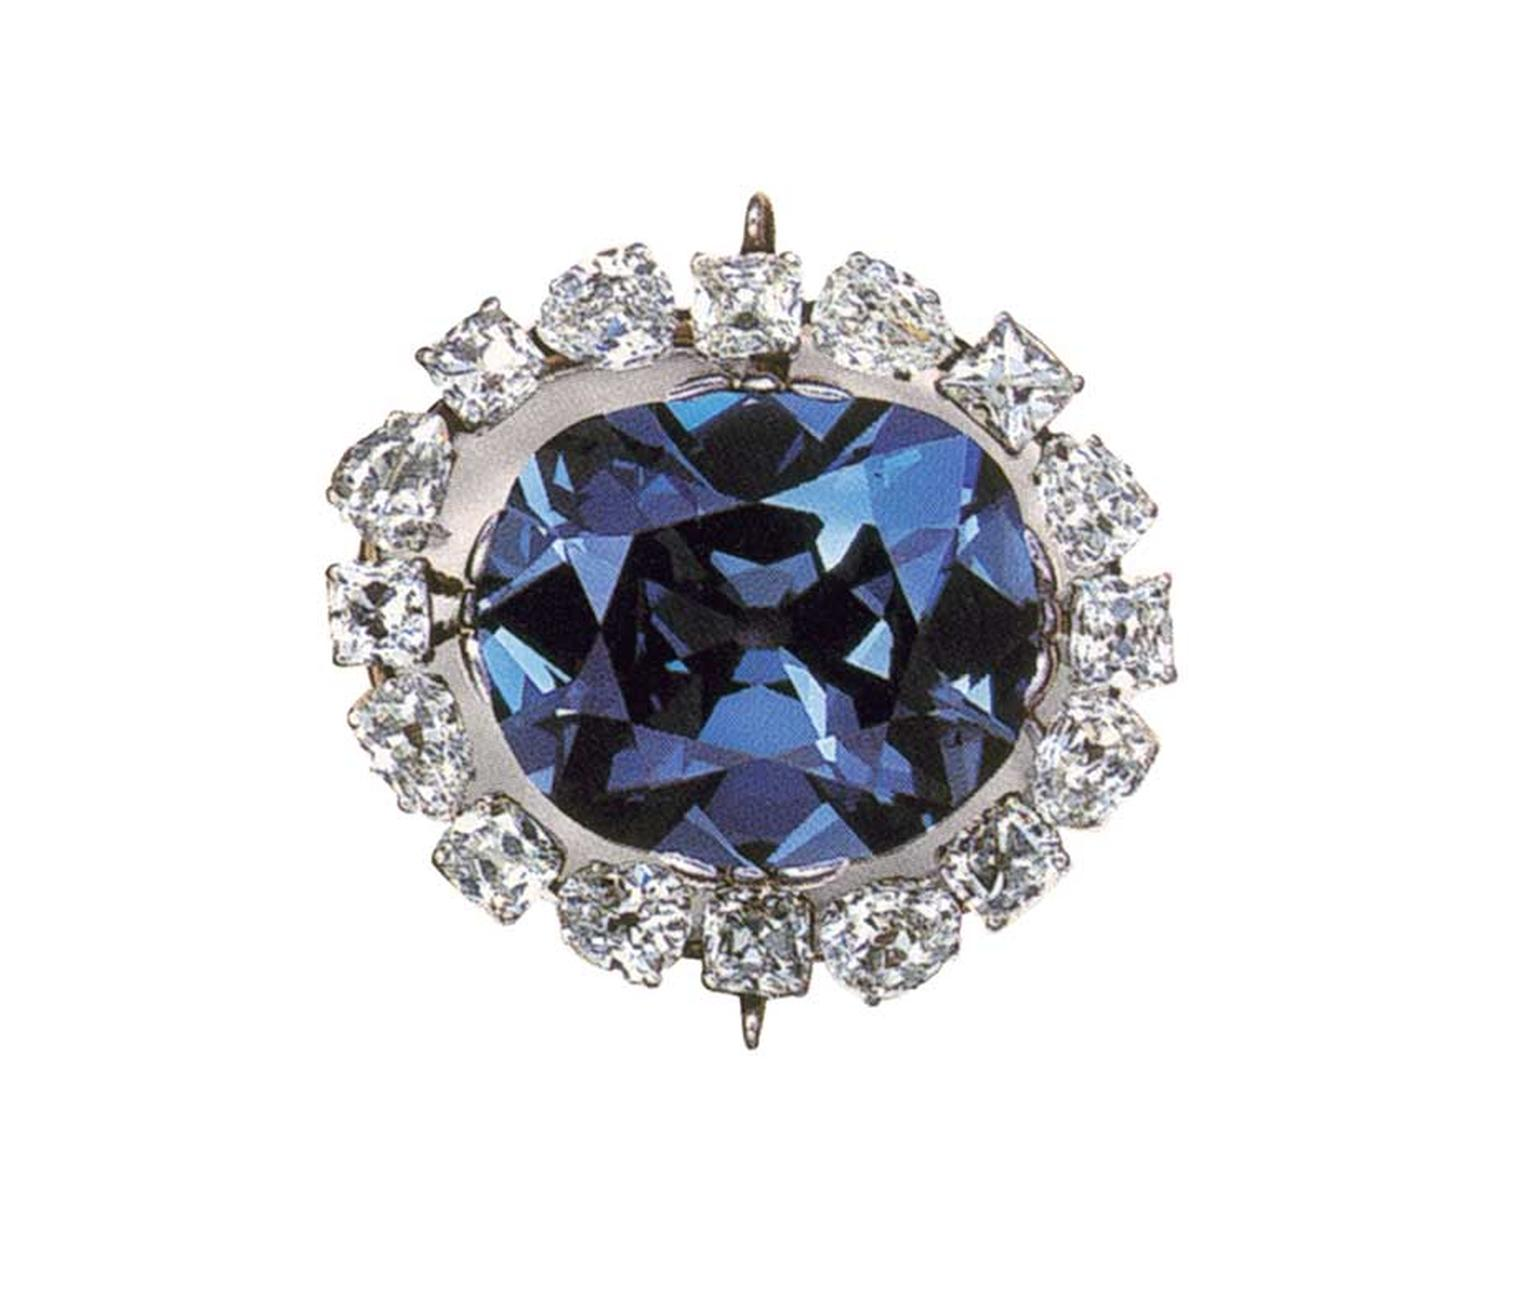 Arguably the most famous diamond in the world, the 45.52ct Hope Diamond, dating from the 17th century and worth a reported $350 million, is on display at the Smithsonian Museum in Washington, DC.